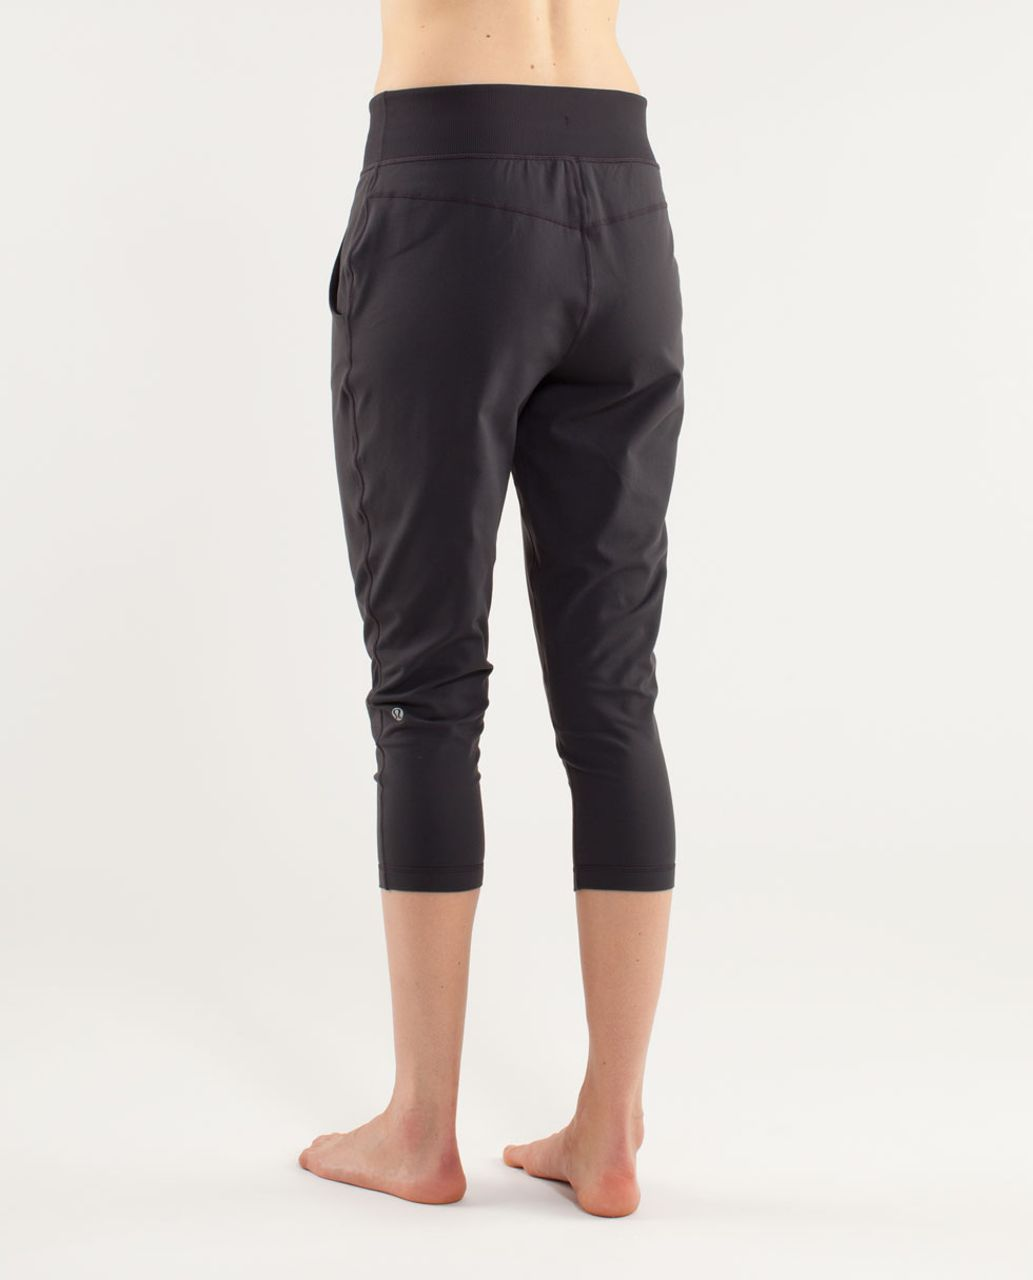 92f5b3c6dc Lululemon Free Fall Crop - Deep Coal - lulu fanatics